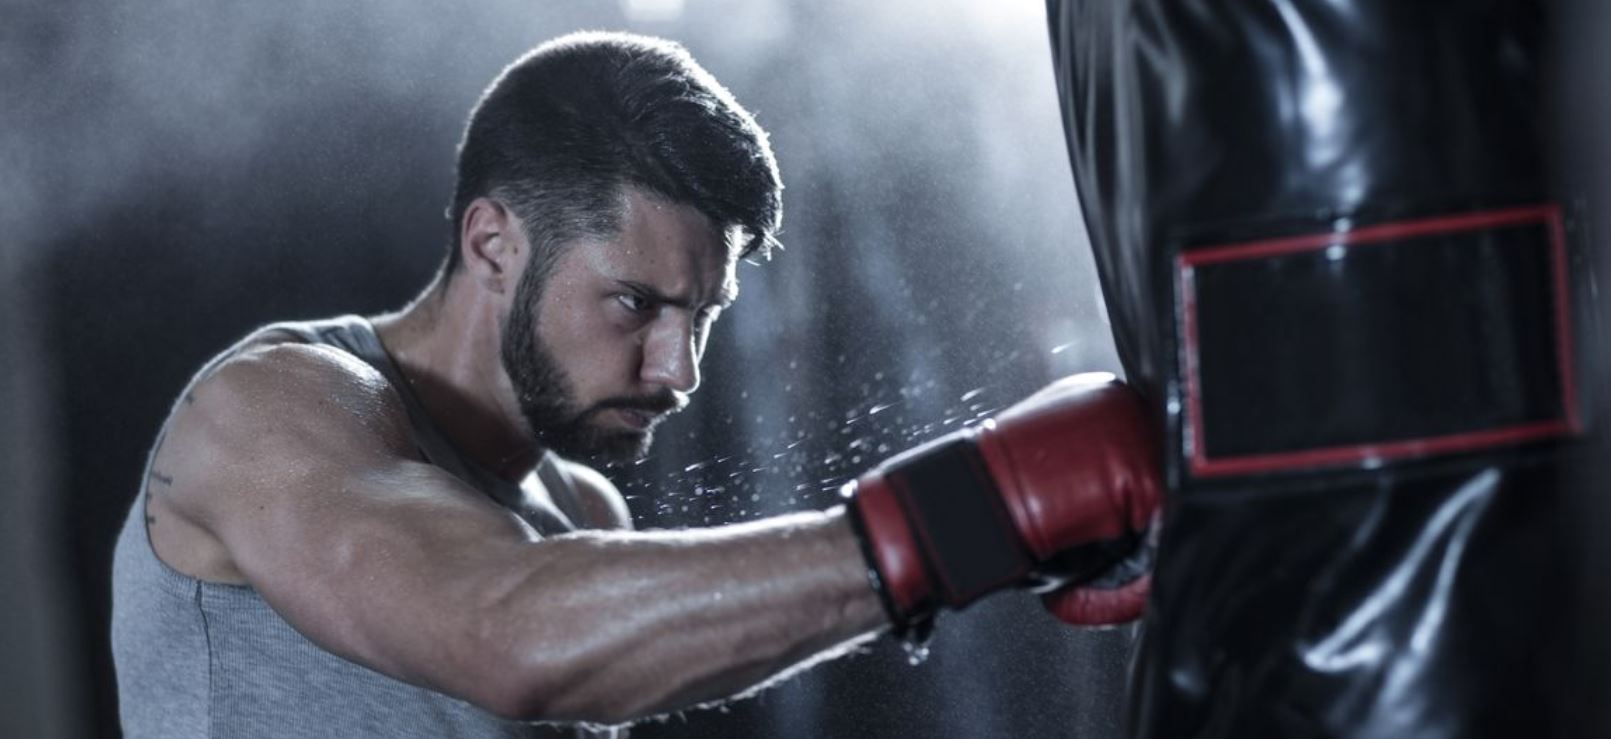 Increase Arm Endurance For Boxing